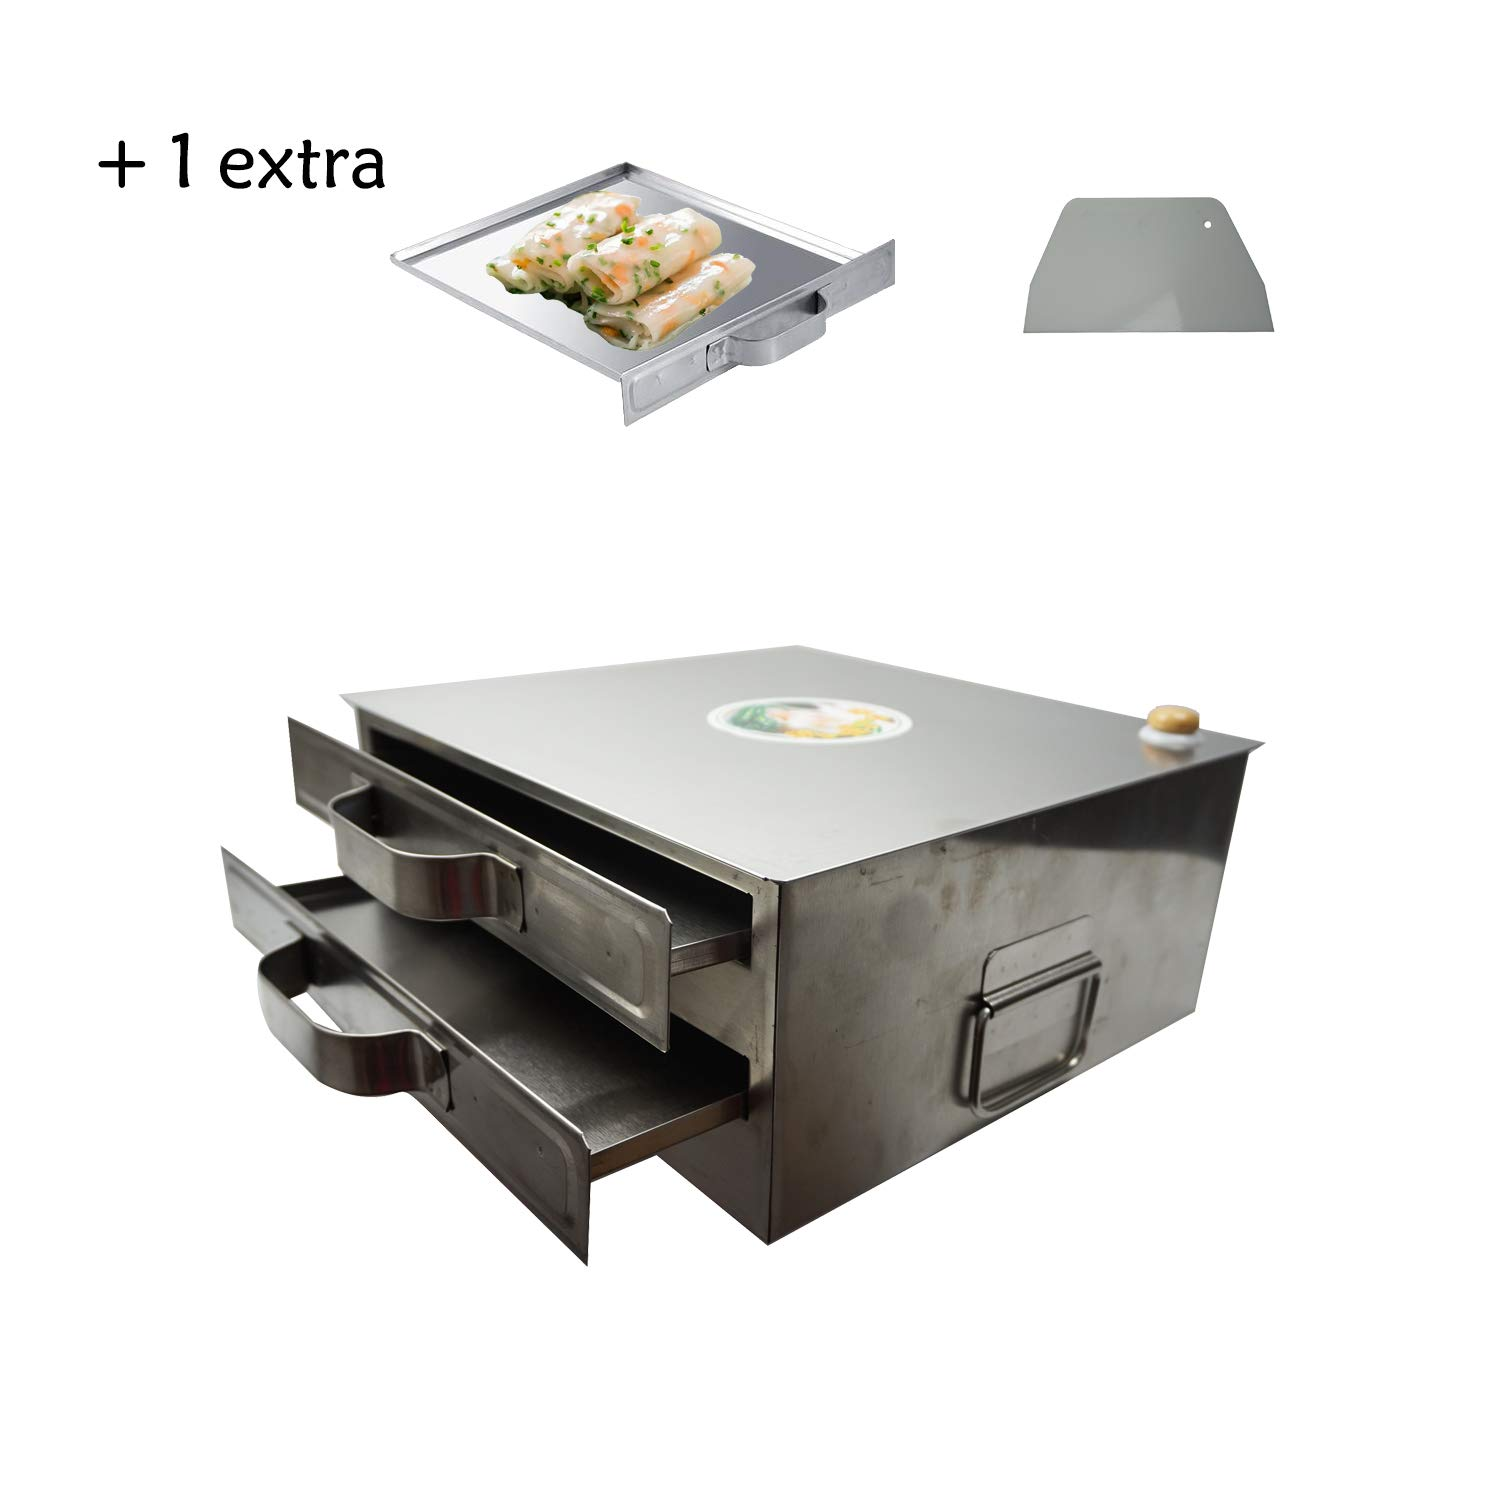 Proshopping Stainless Steel Rice Rolls Machine, 2 Layer Rice Noodle Roll Steamer, Rice Roll Maker - with 1 Extra Drawer Tray and 1 Cleaner, for Food Household